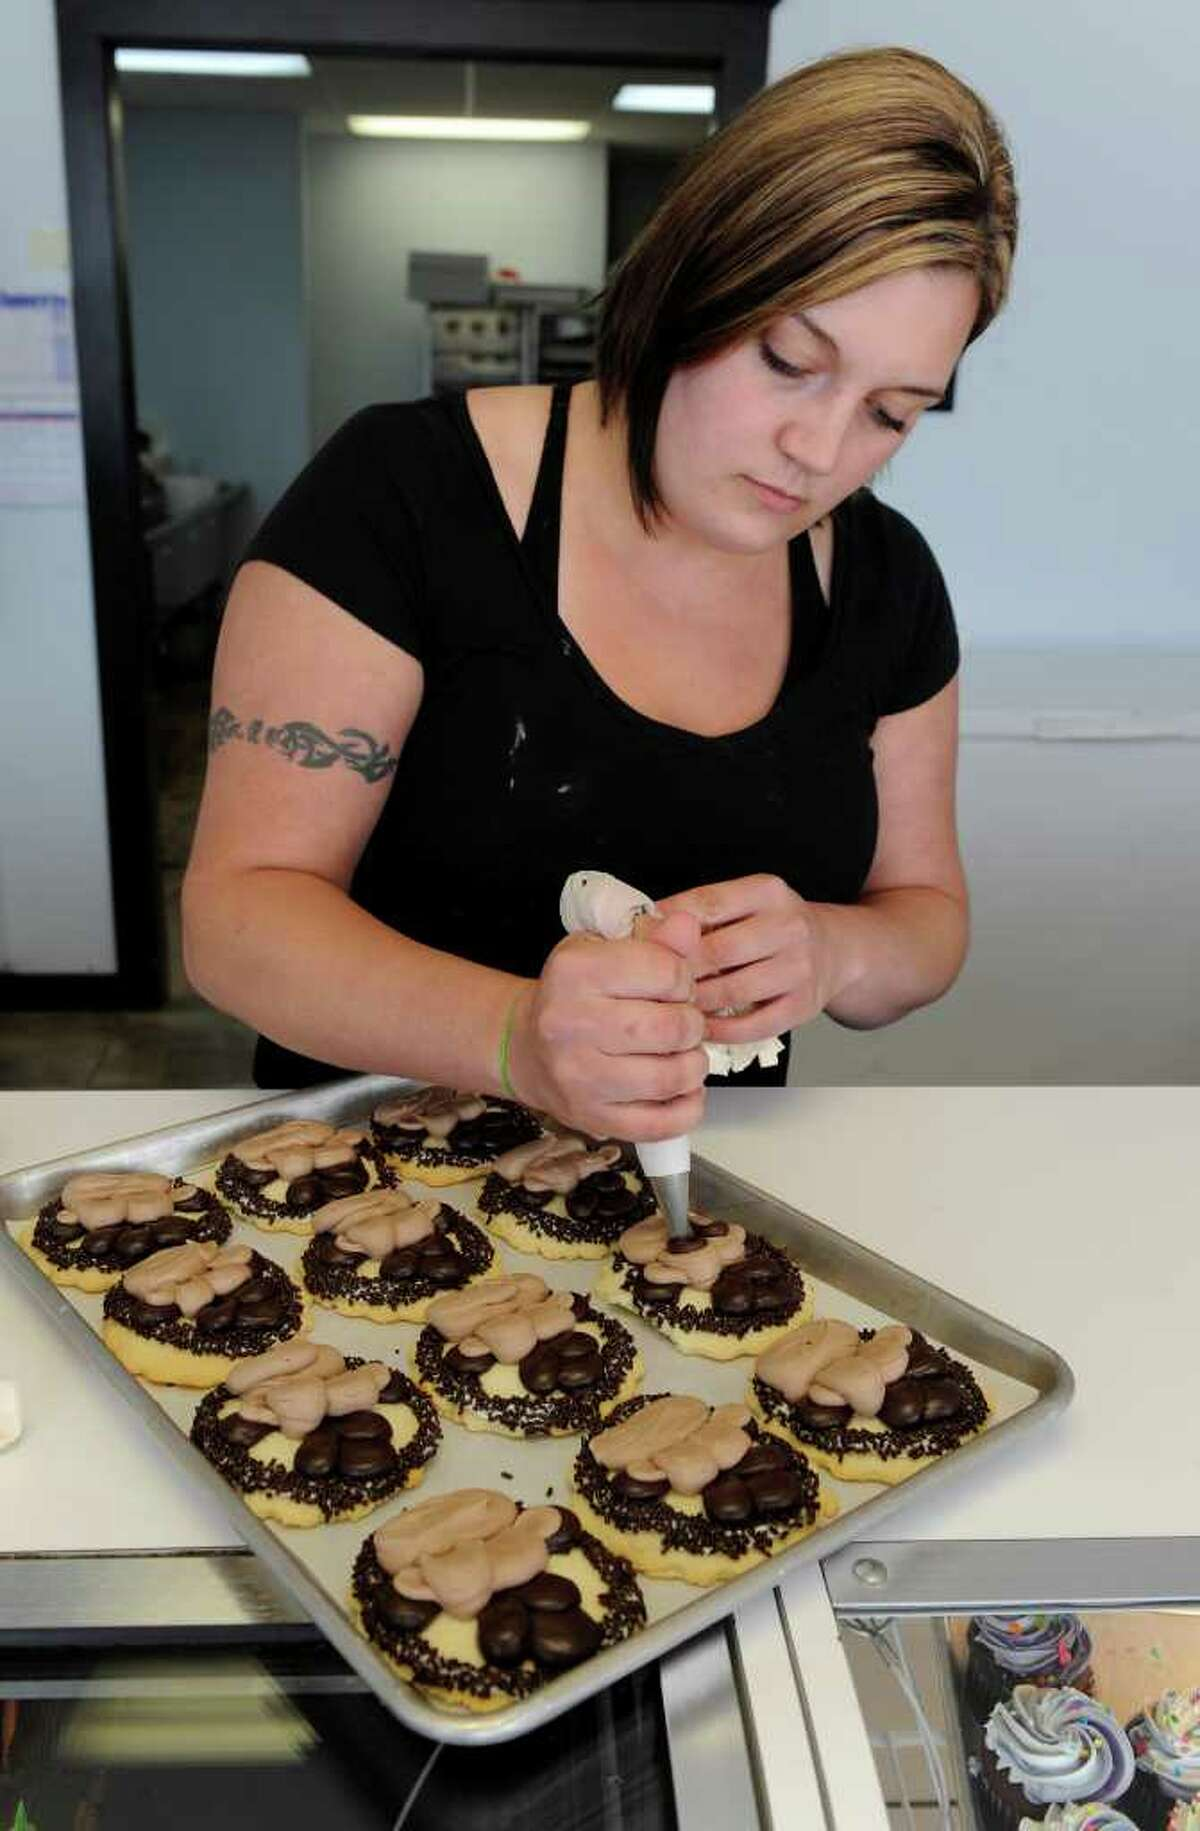 Salina Crisafulli decorates cookies at Sweet Temptations in Colonie on Tuesday, Aug. 10, 2010. (Skip Dickstein/Times Union)